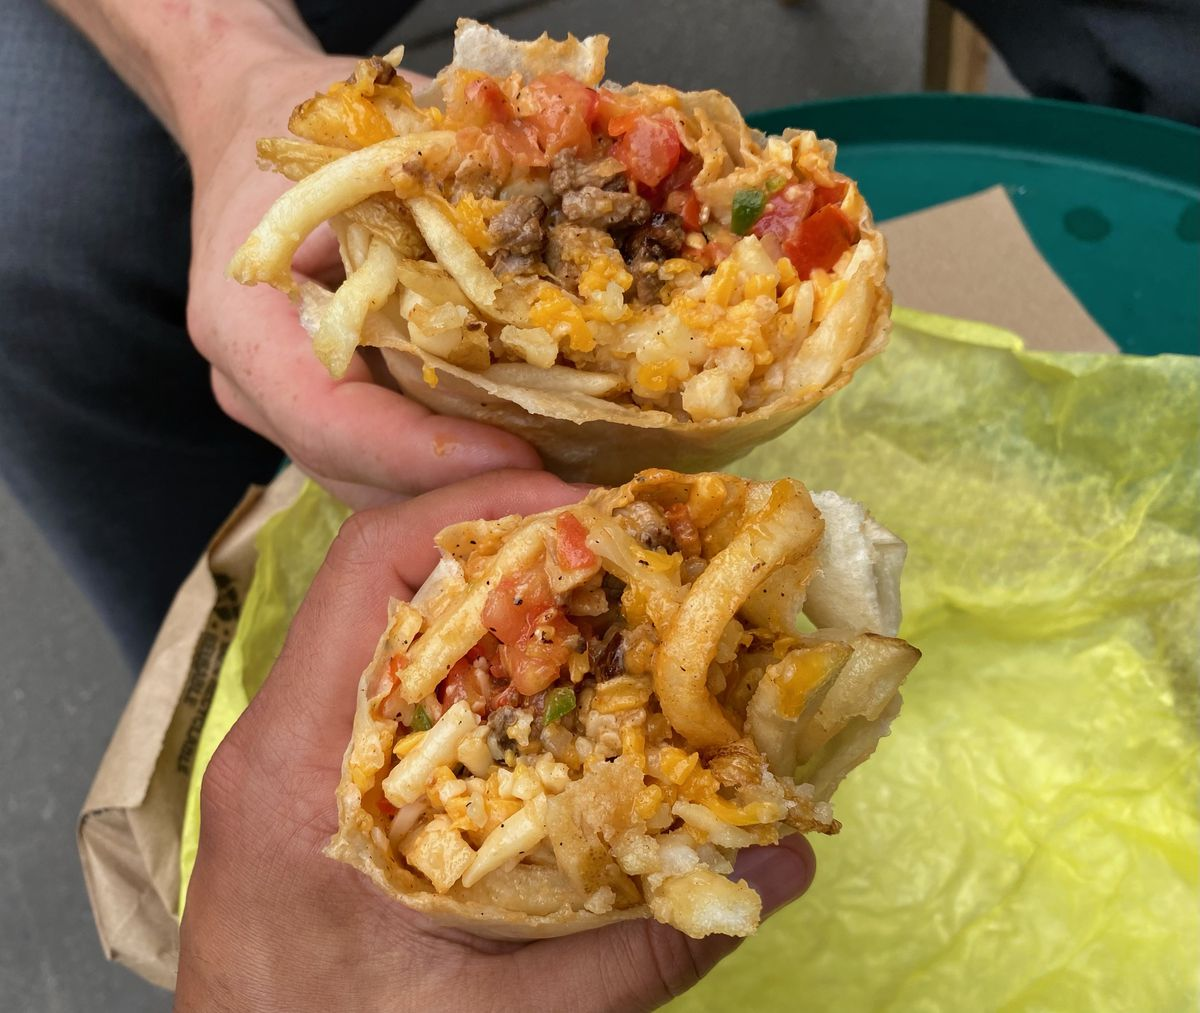 Two hands hold two halves of a California burrito, stuffed with rice, pico de gallo, French fries, and carne asada